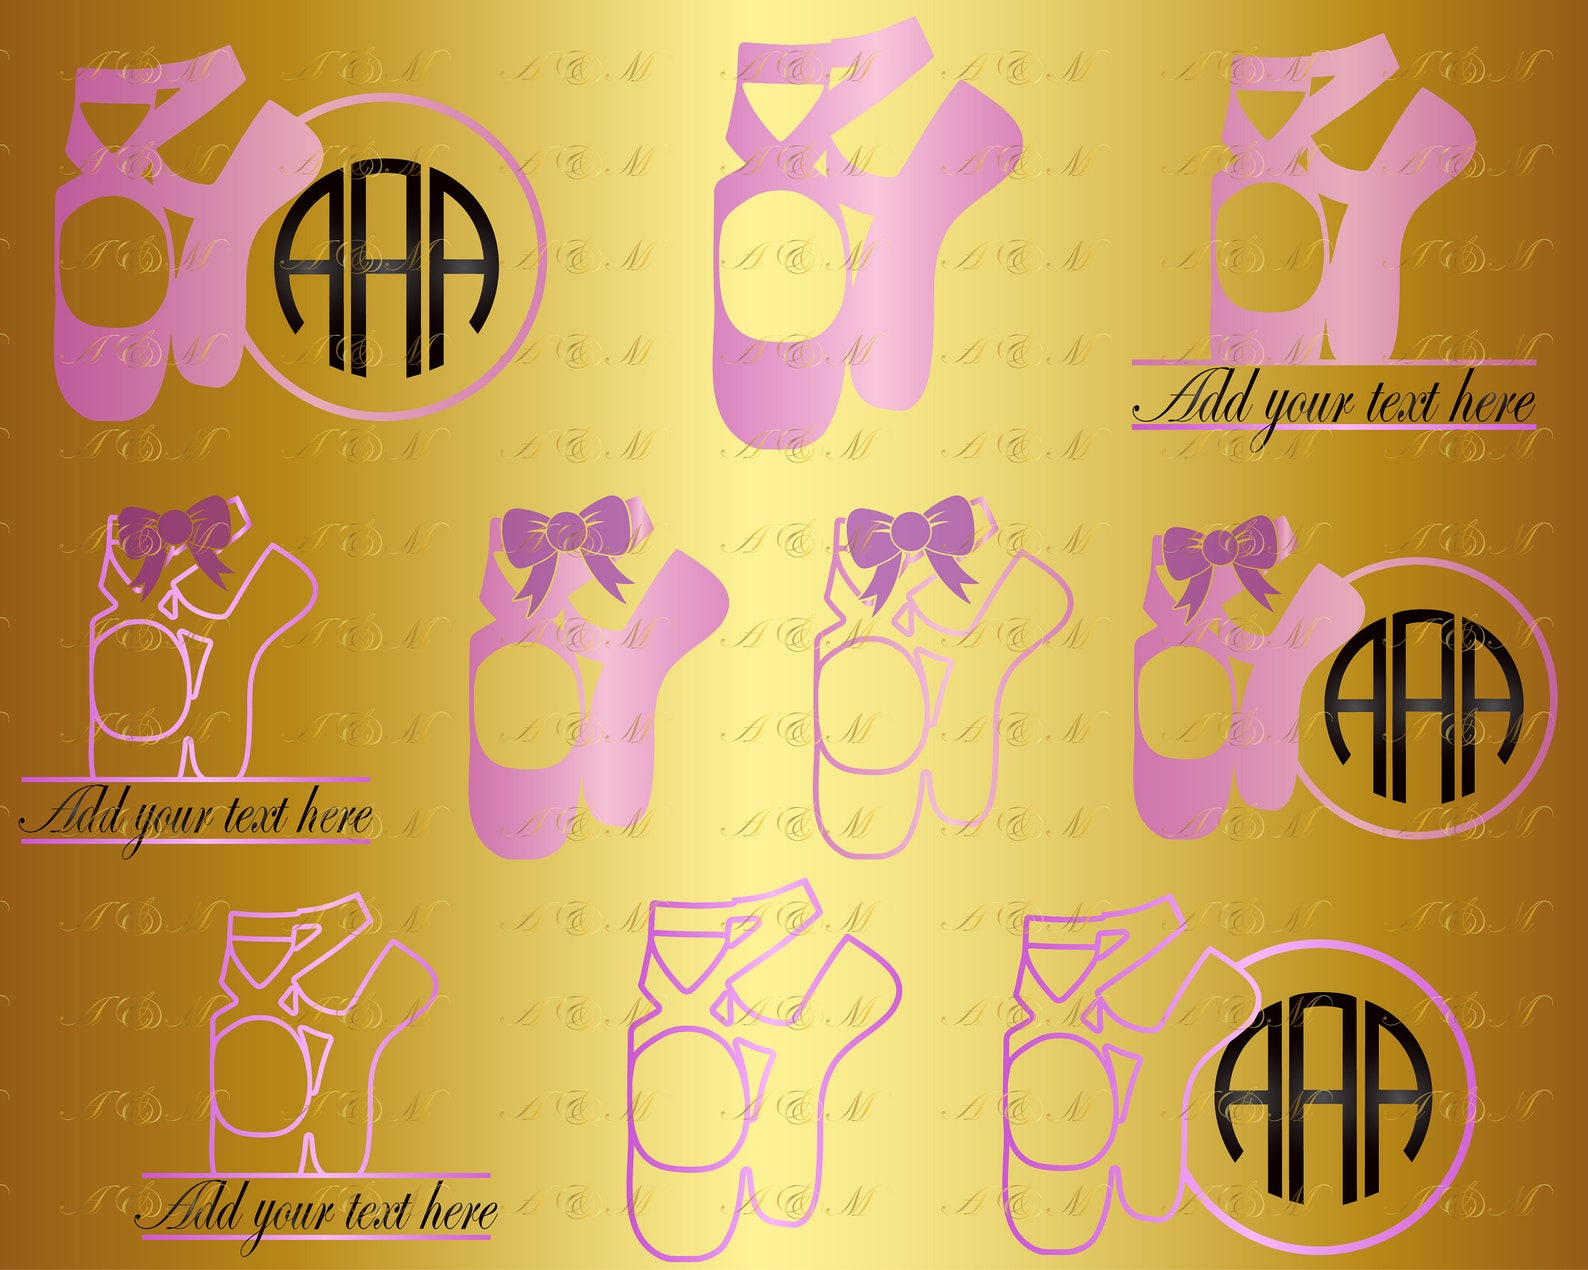 60% off ballet shoes svg ballerina svg ballet dancer svg ballet shoe silhouette png ai eps dxf vinyl cut file decal digital down